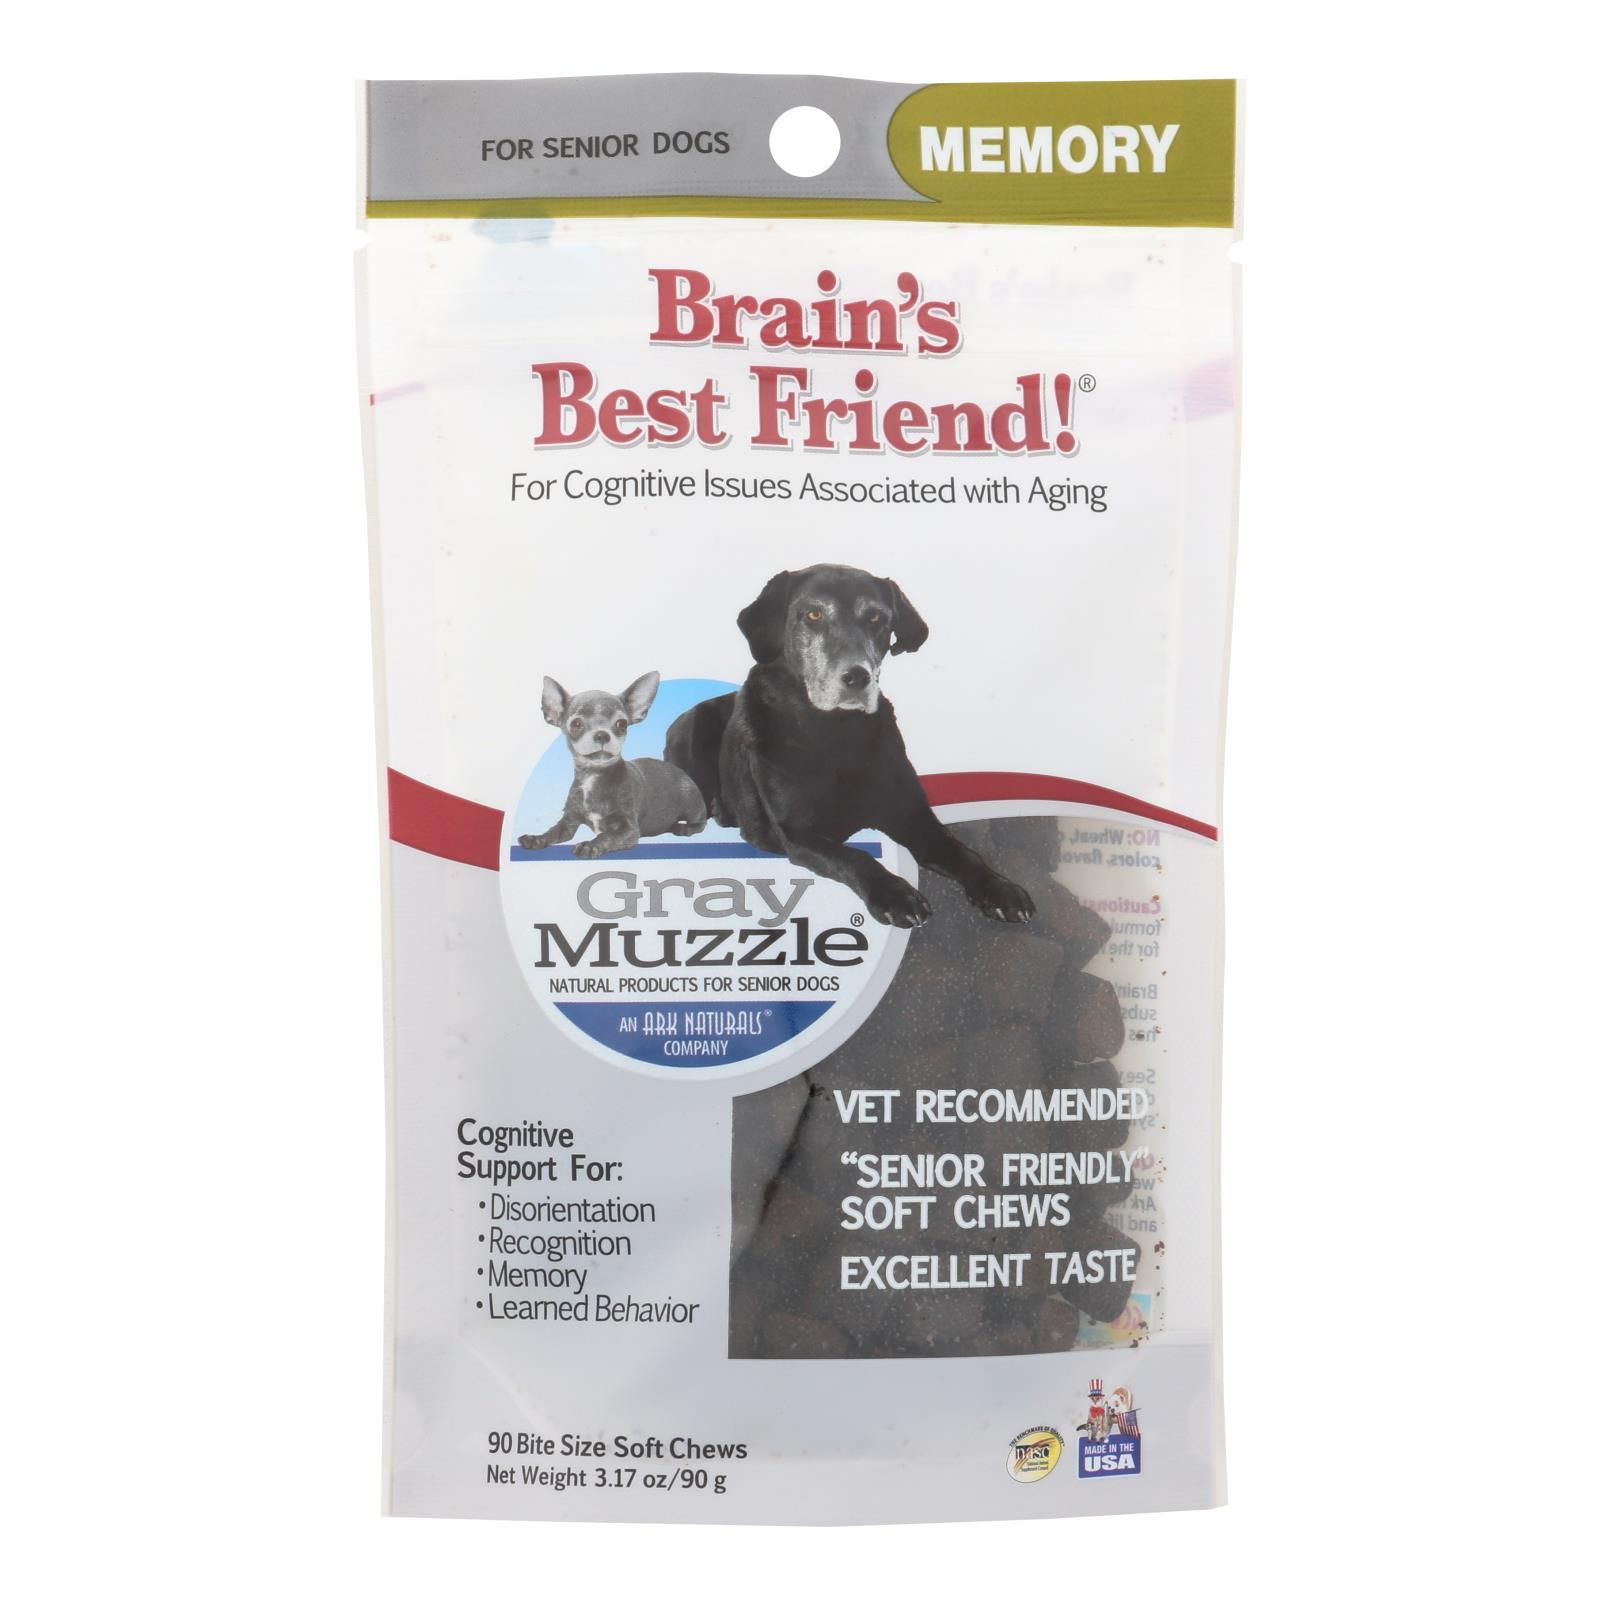 Ark Naturals Brains Best Friend - Gray Muzzle - 90 Chews - 1 Each - BeeGreen